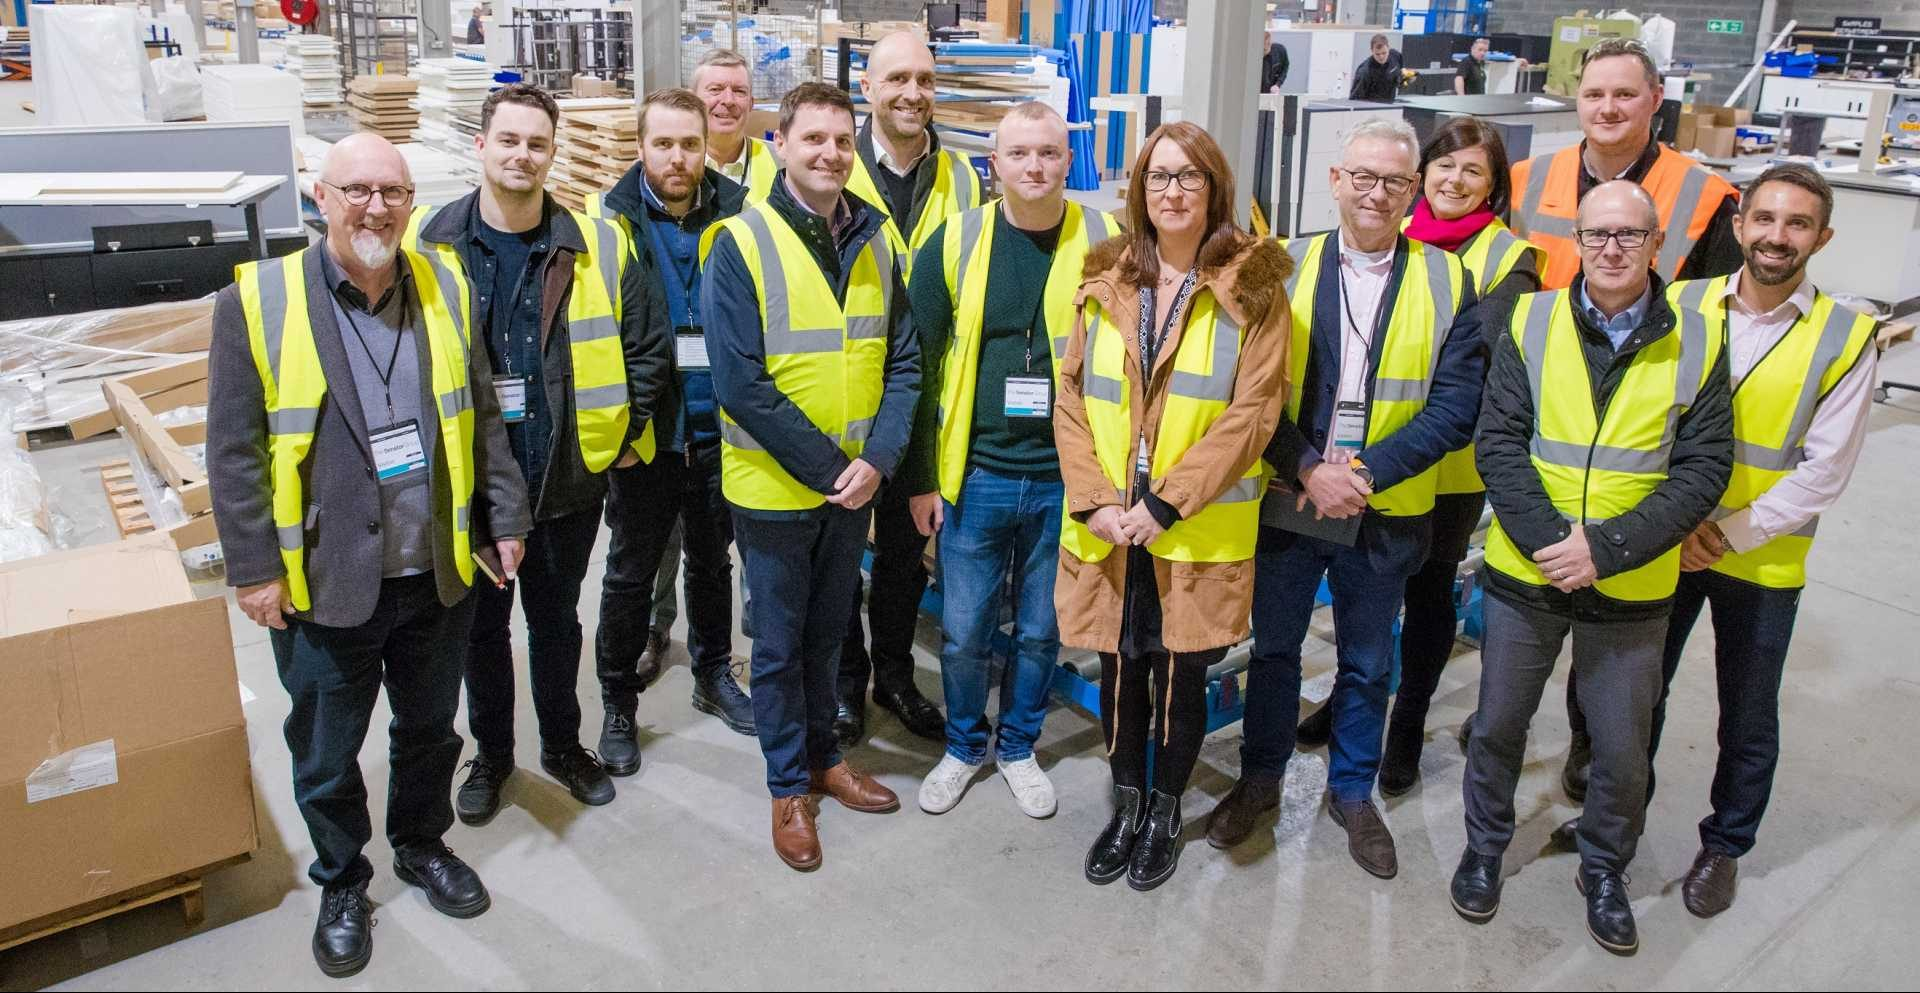 2019/20 Delegates of the Made Smarter Leadership Programme during a visit to Veka